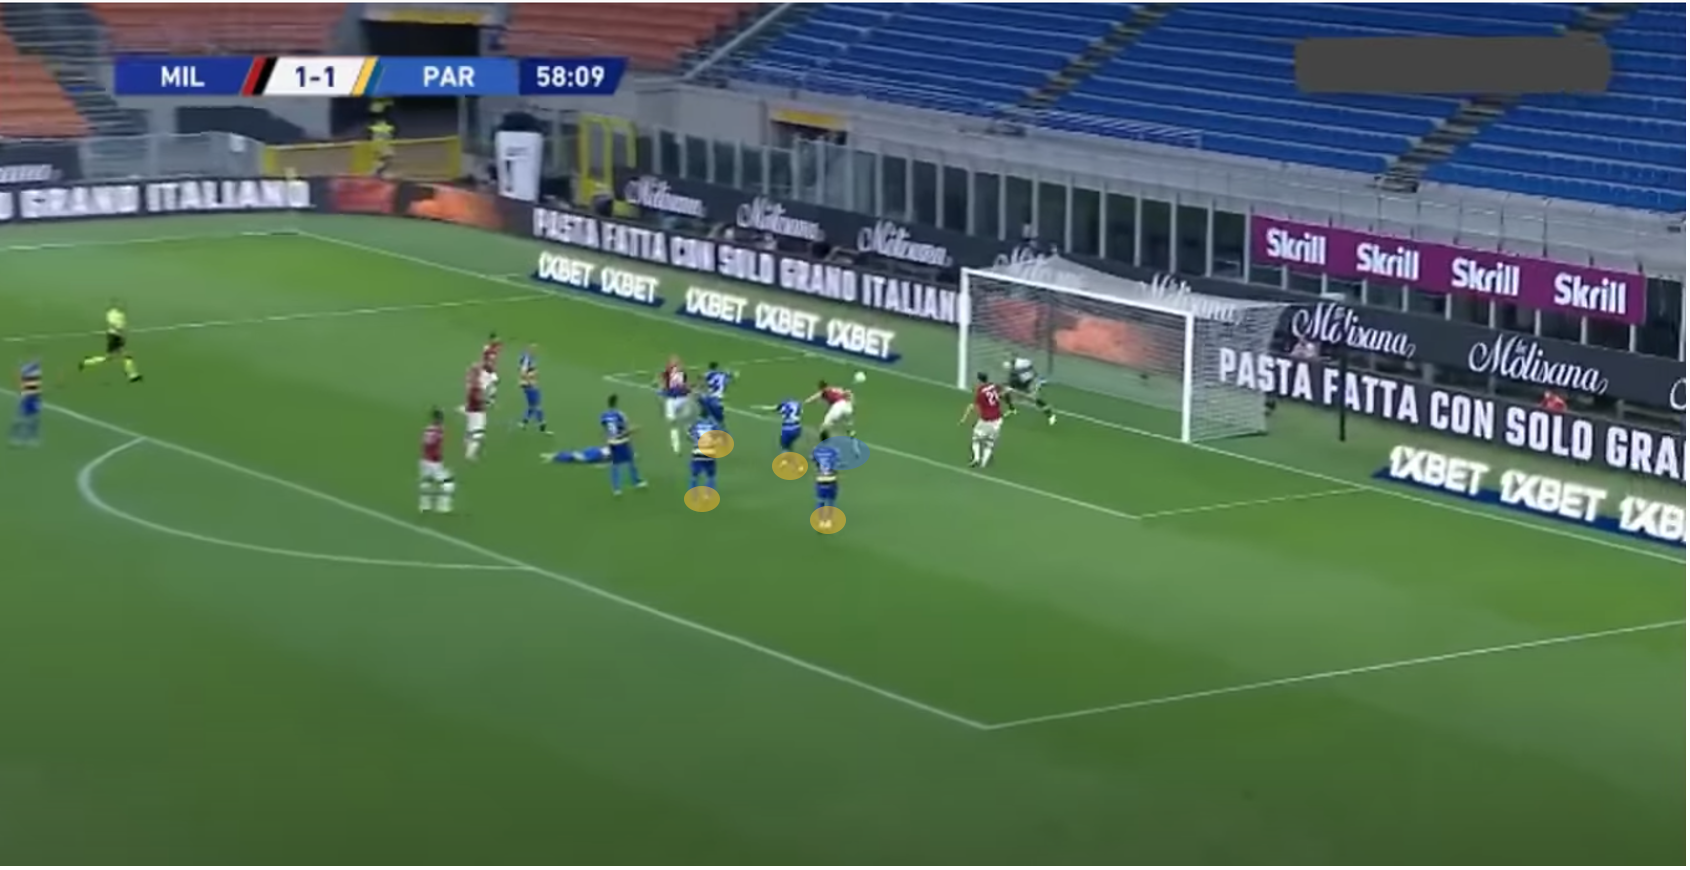 Serie A 2019/20: AC Milan vs Parma – tactical analysis tactics